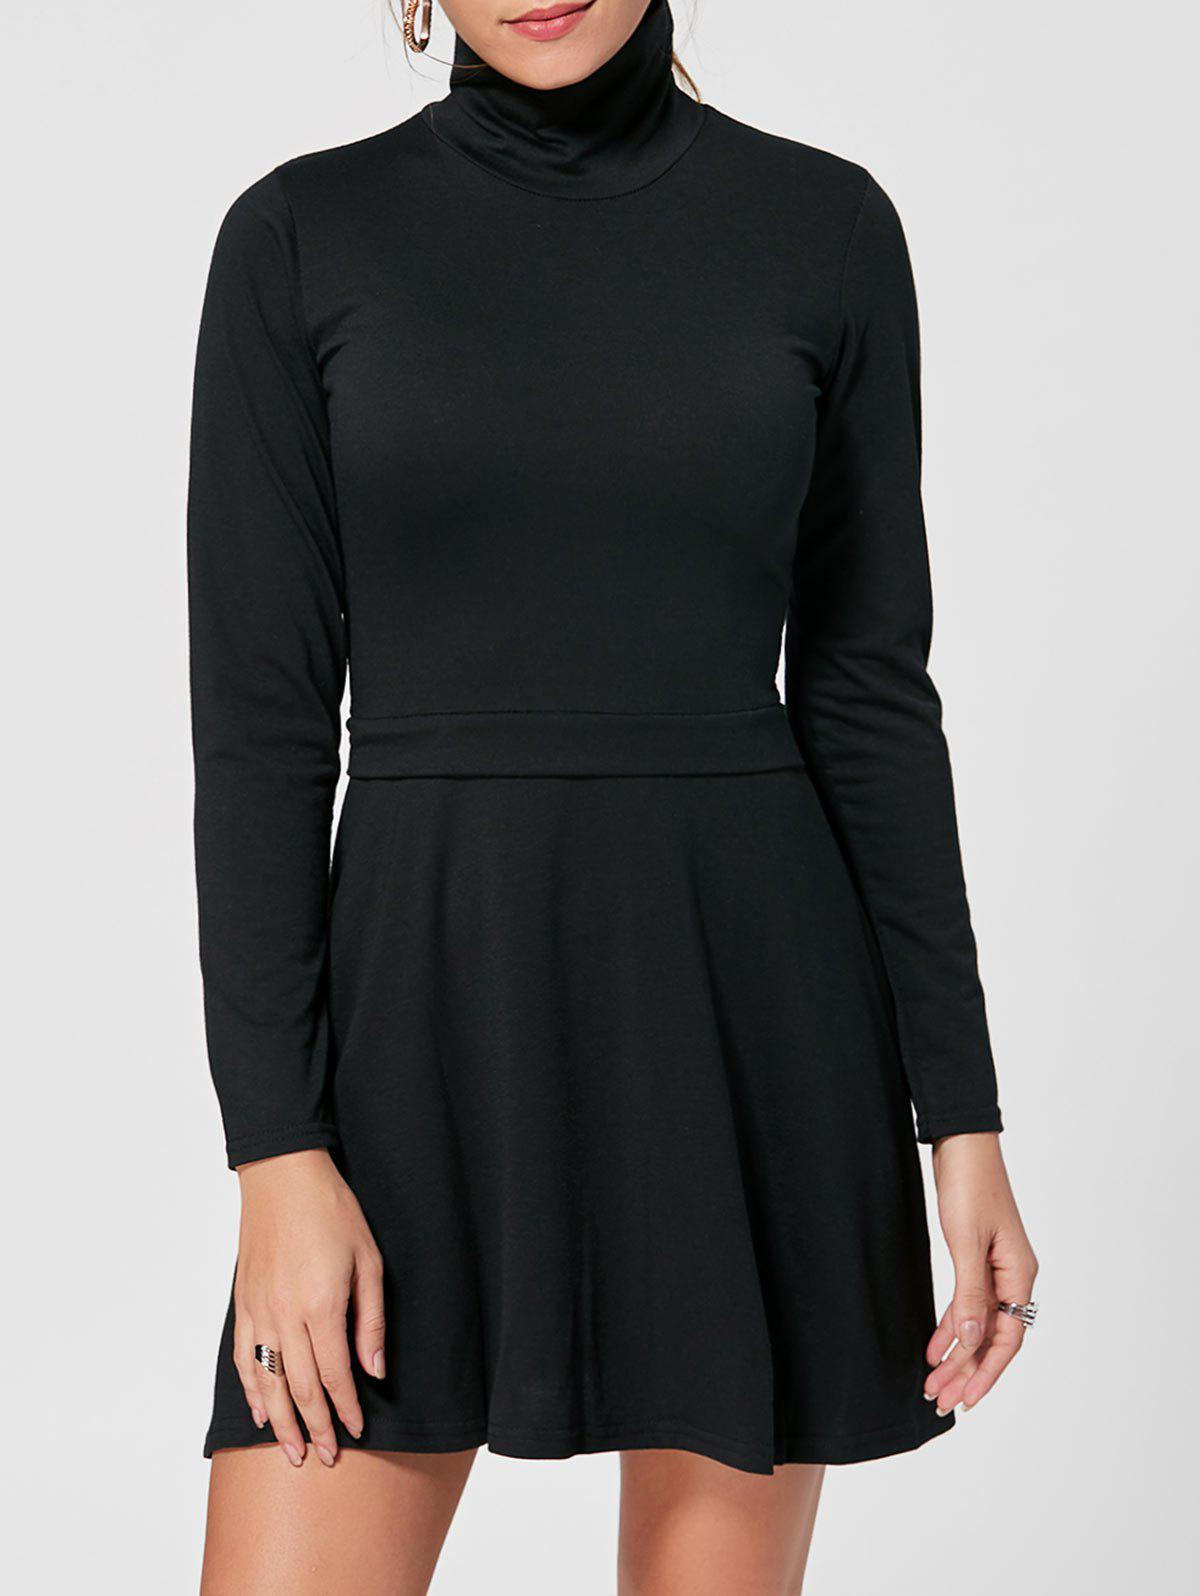 High Neck Long Sleeve Mini A Line Dress - BLACK S